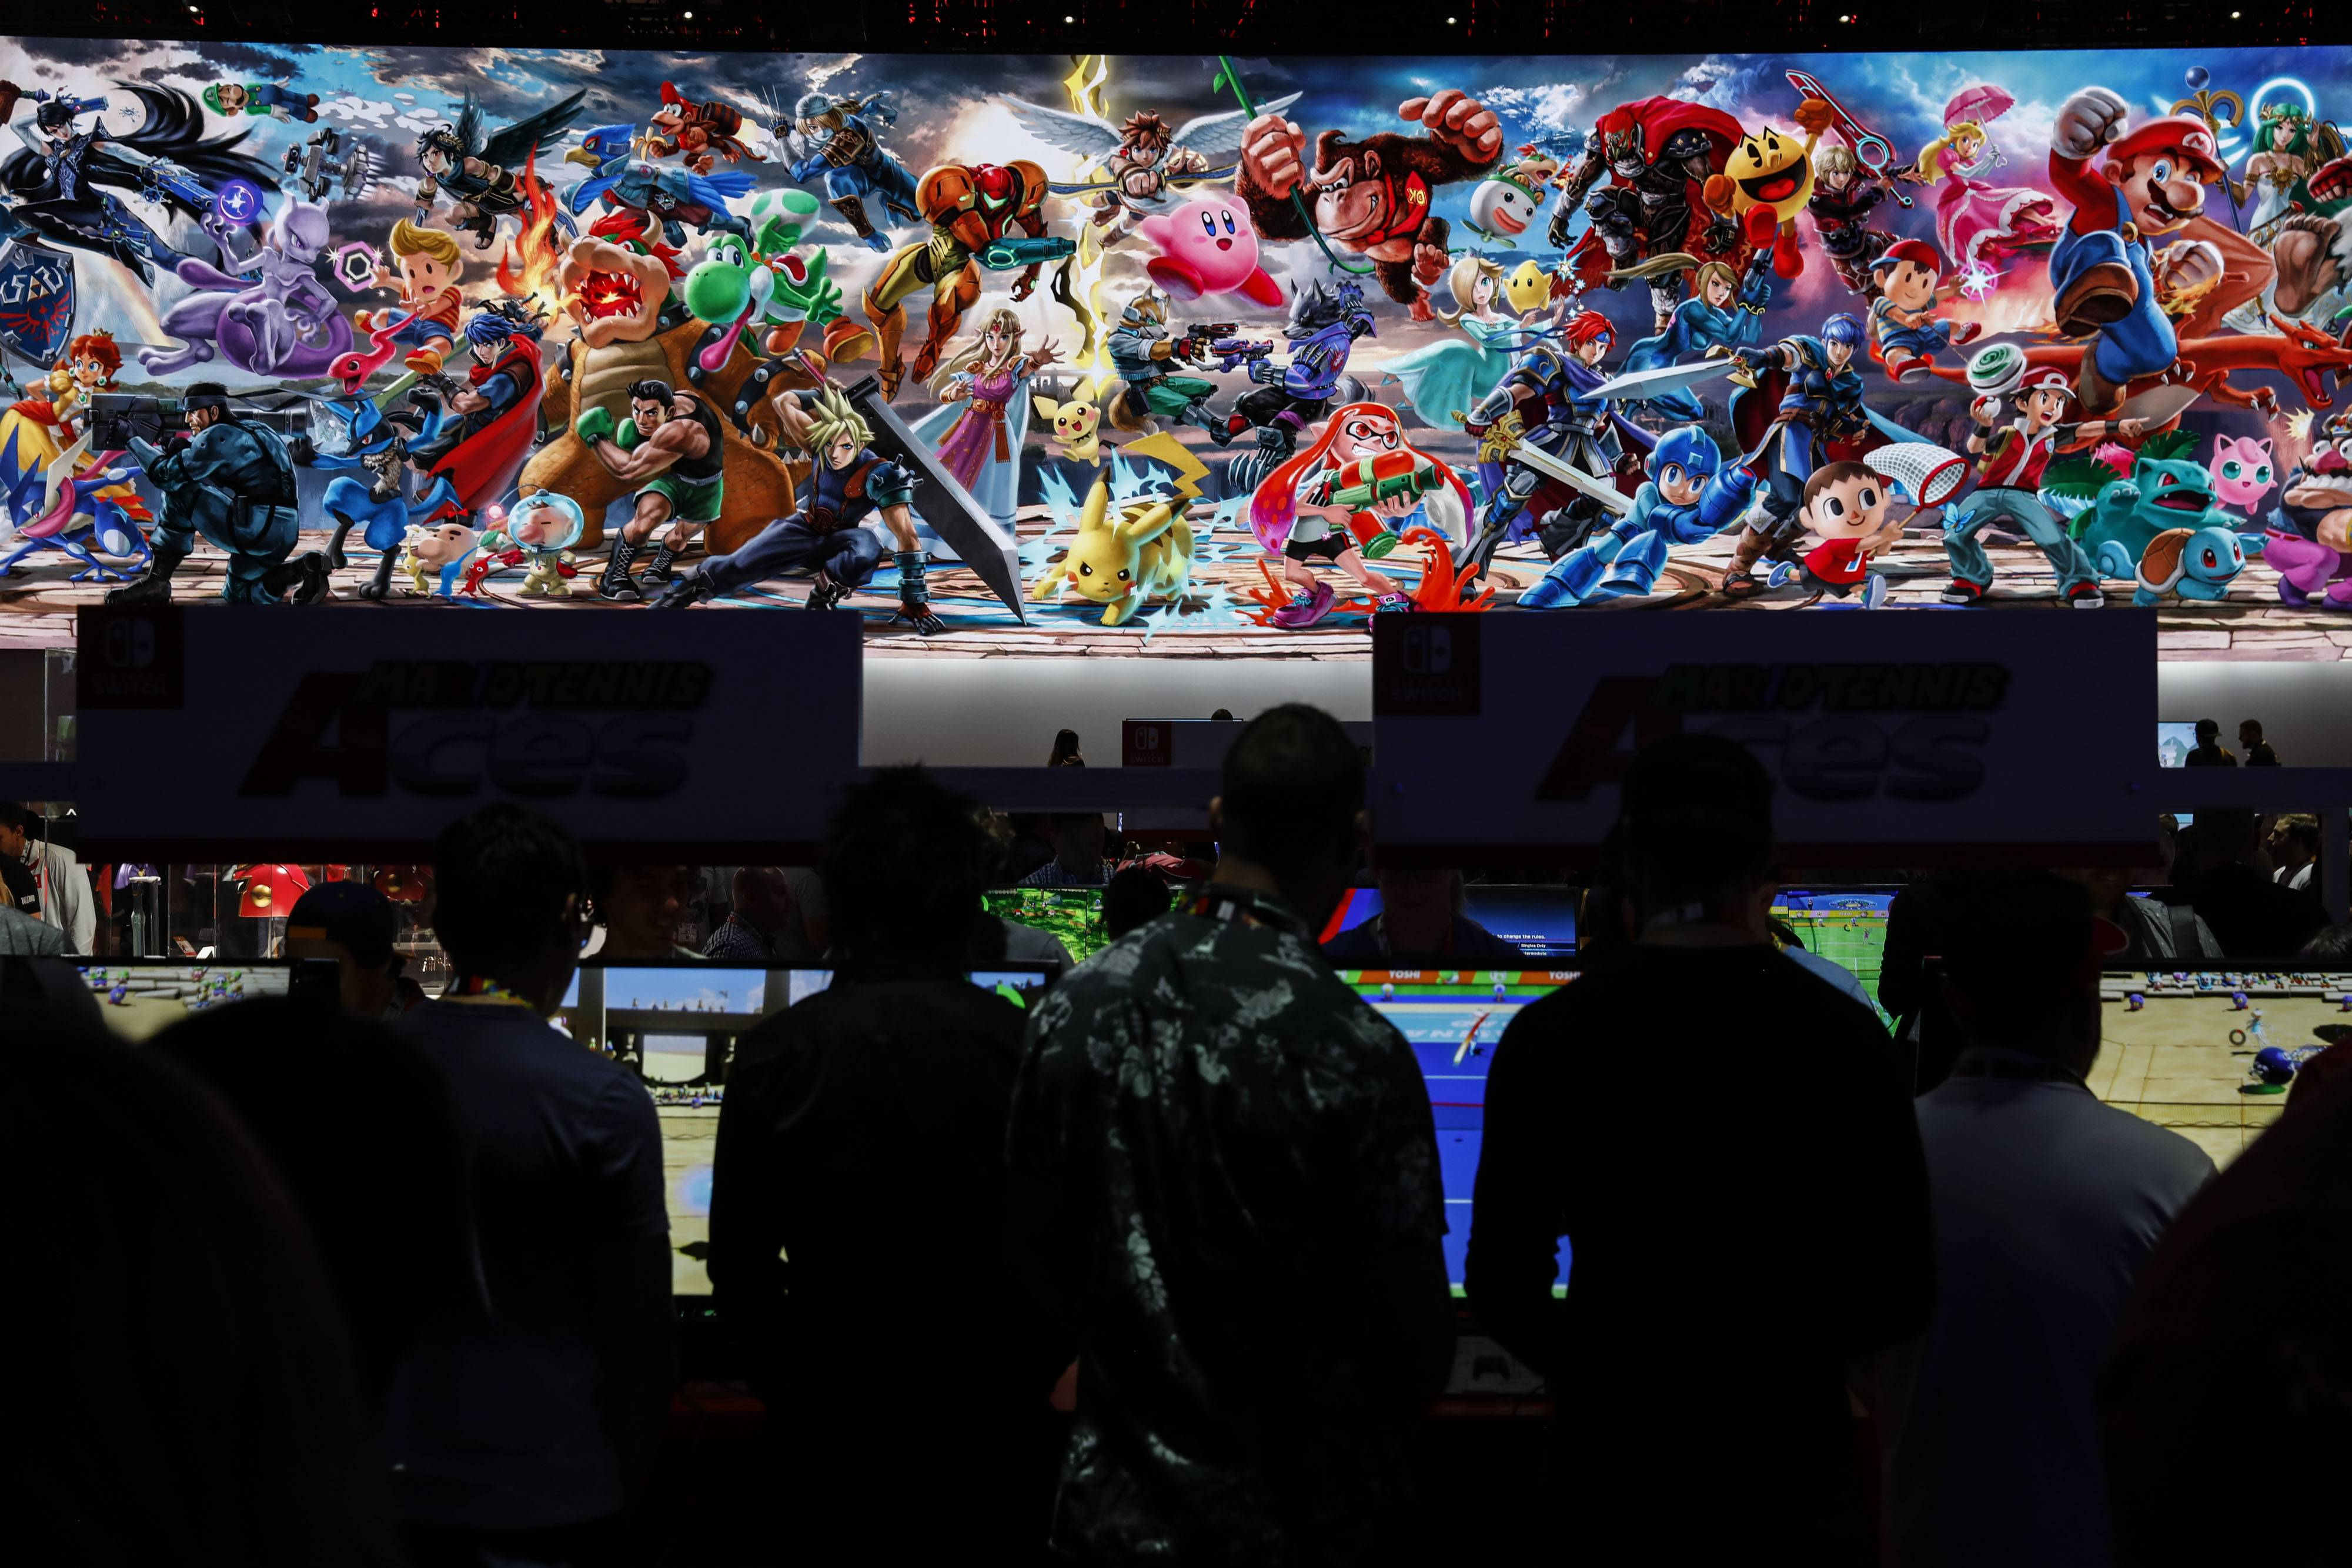 Crowds gather in June at Nintendo's booth at E3 in Los Angeles to play Super Smash Bros. Ultimate.